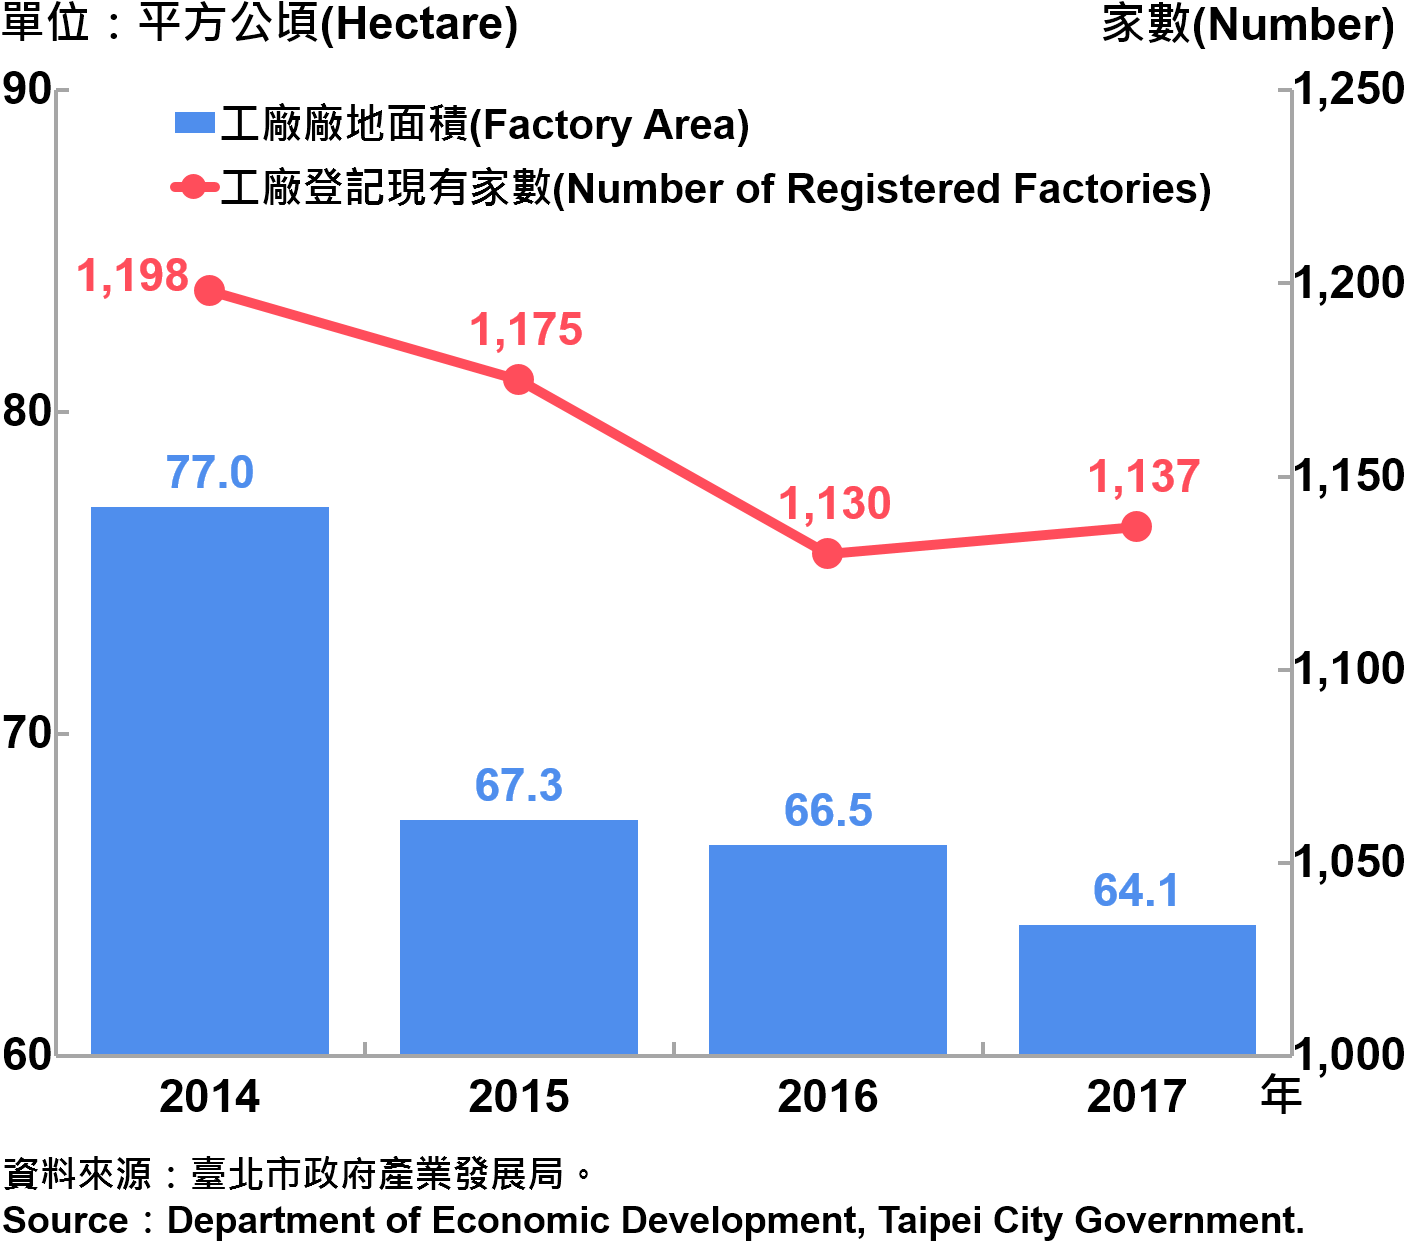 圖6、臺北市工廠登記家數及廠地面積—2017  Number of Factories Registered and Factory Lands in Taipei City—2017